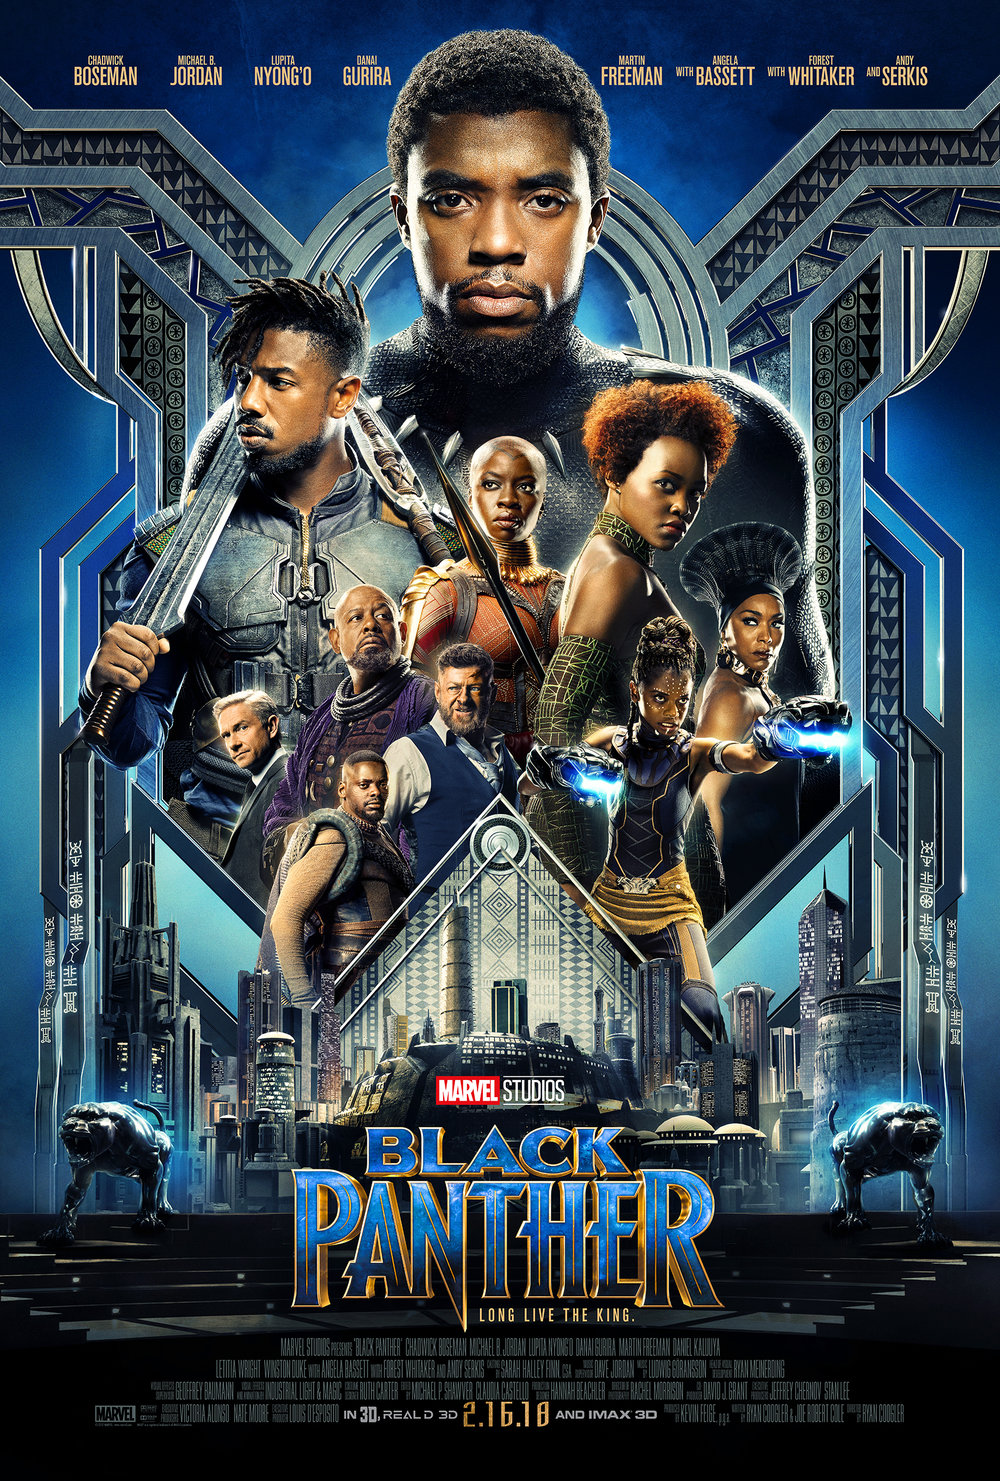 Black_Panther_Poster_October_2017.jpg